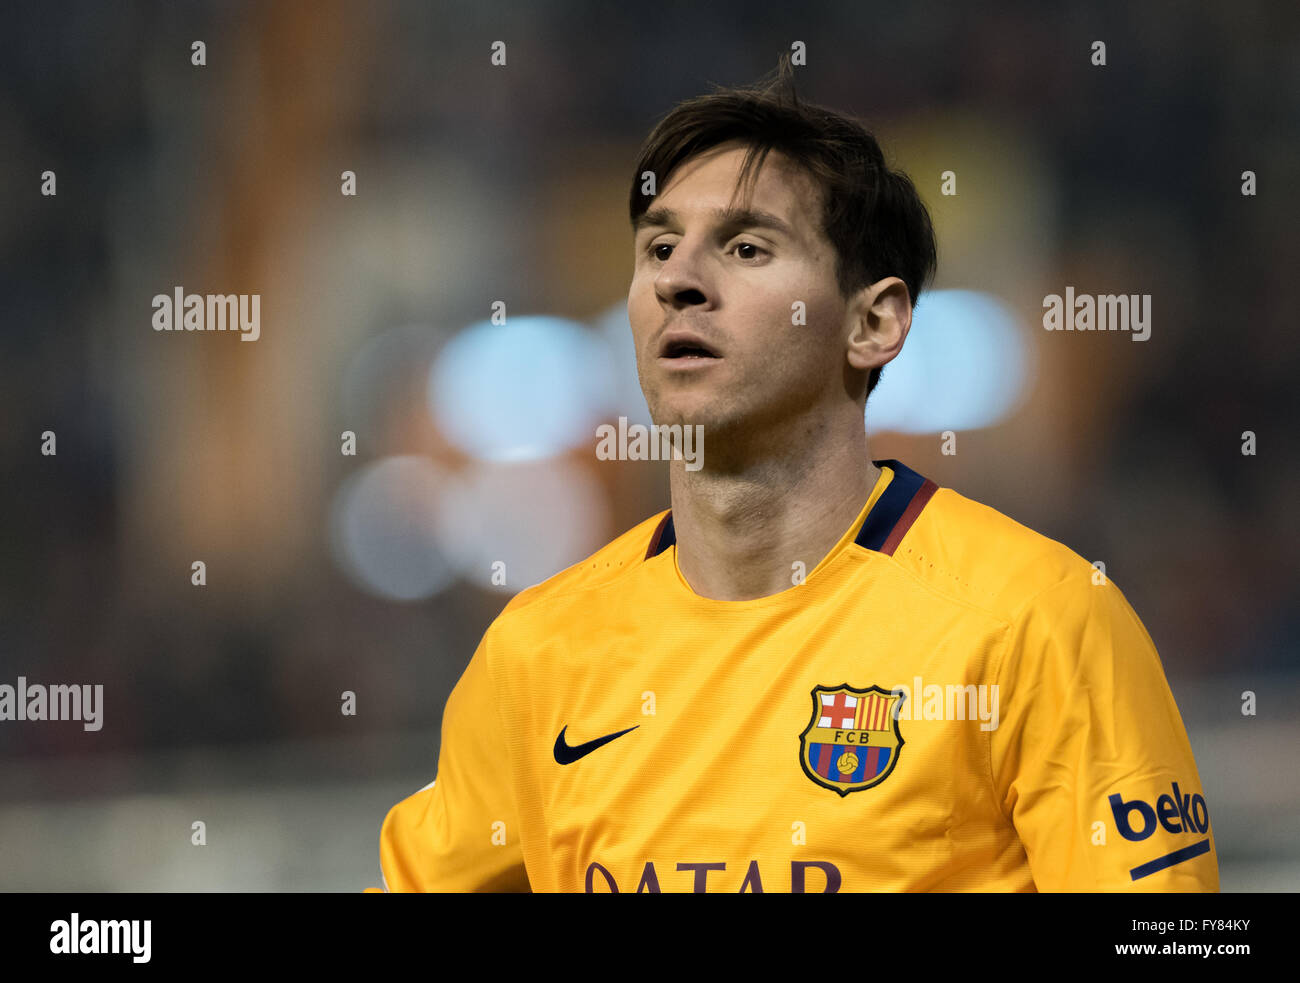 Leo Messi during the match between Valencia and Fc Barcelona - Stock Image